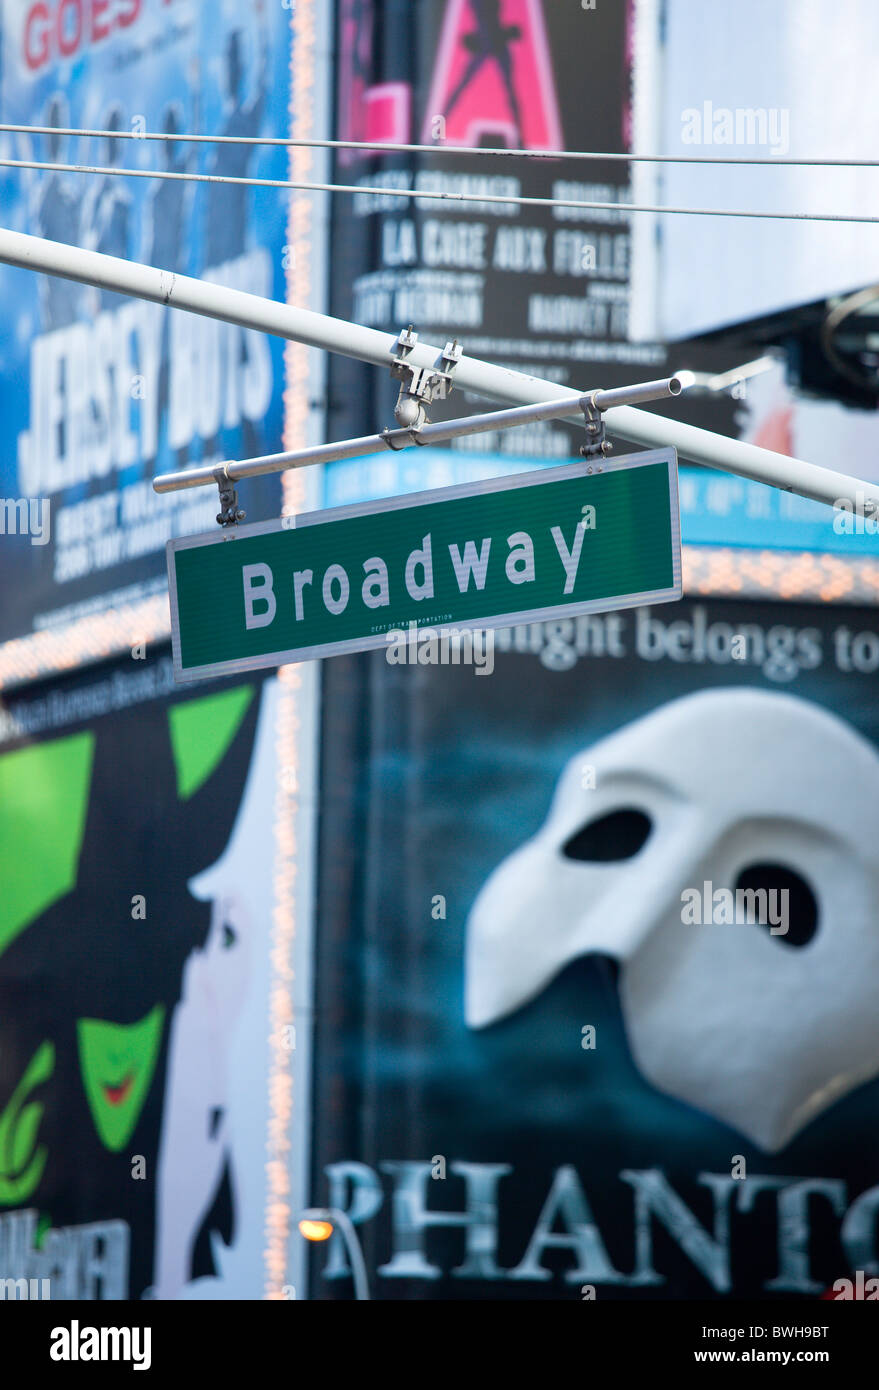 USA, New York, Manhattan, Overhead road sign for Broadway with theatre stage show posters or billboards on buildings - Stock Image